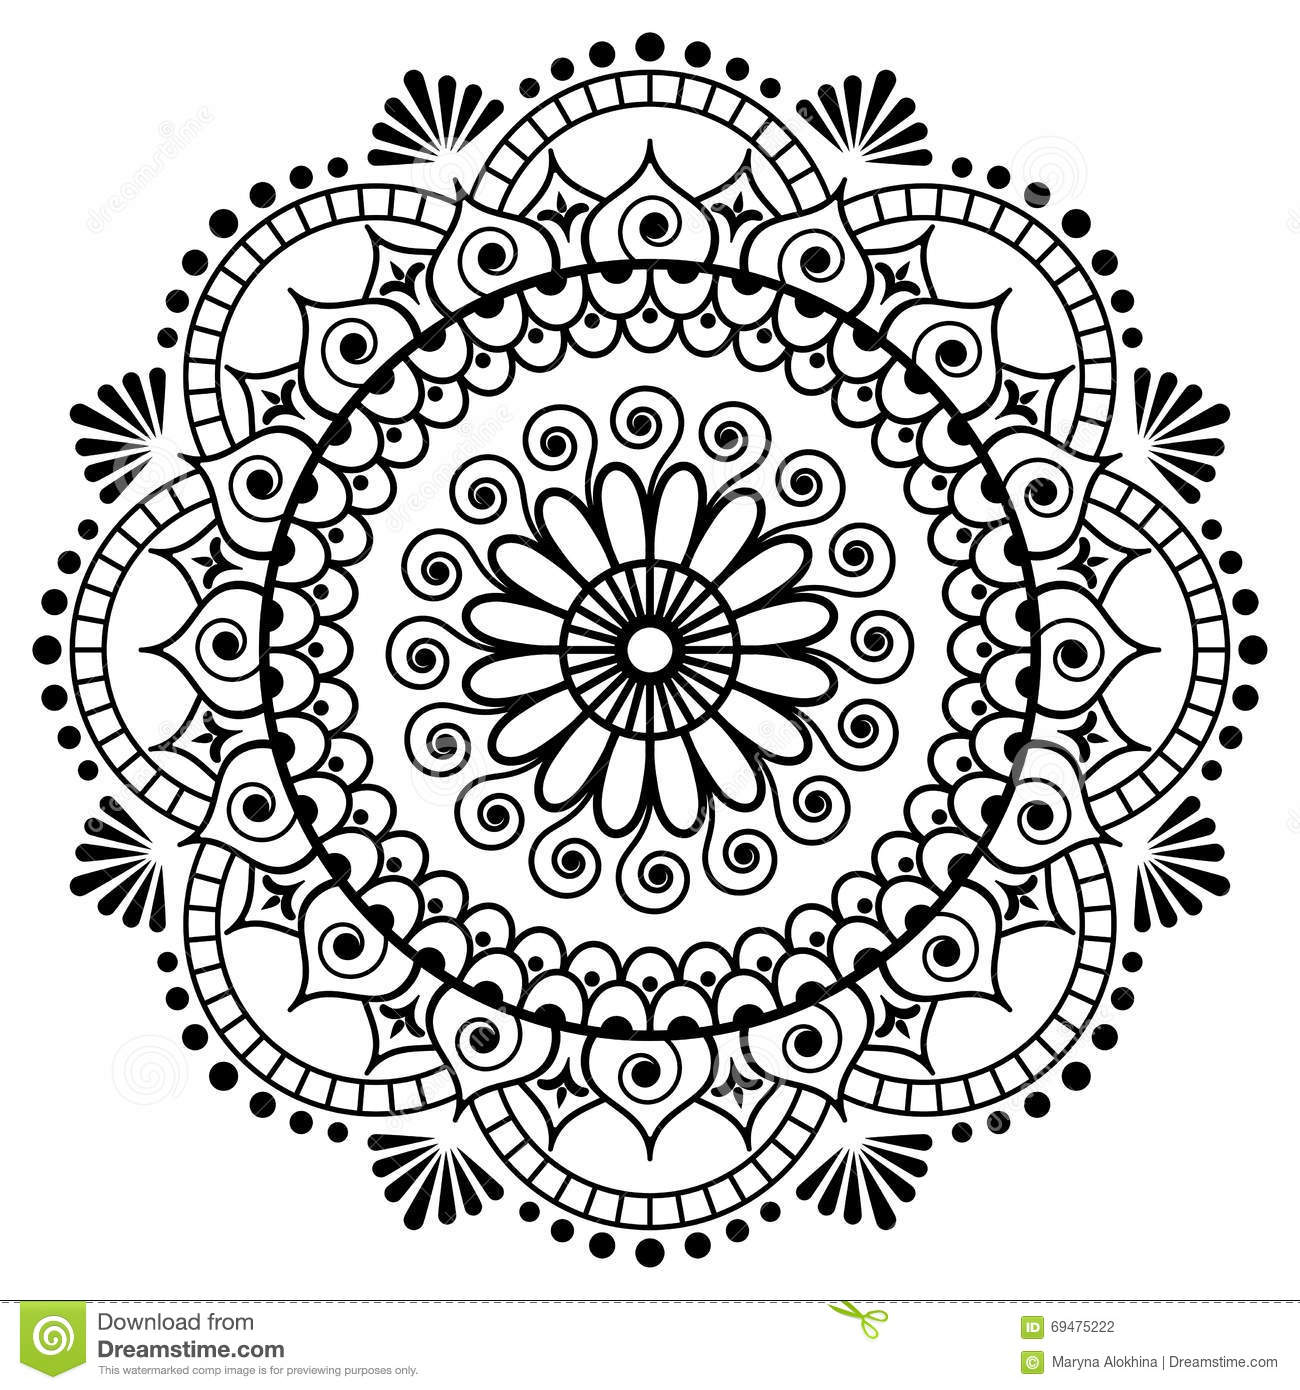 Floral Ornament Free Vector Design additionally Christmas Light Bulb Template free Printable Christmas Light Bulb New Calendar Template Site 15 further Stock Illustration Coloring Pages Adults Decorative Hand Drawn Doodle Nature Ornamental Curl Vector Sketchy Seamless Pattern Book Image70835185 as well Crochet Doily Free Crochet Pattern also 95955920. on free ornament patterns